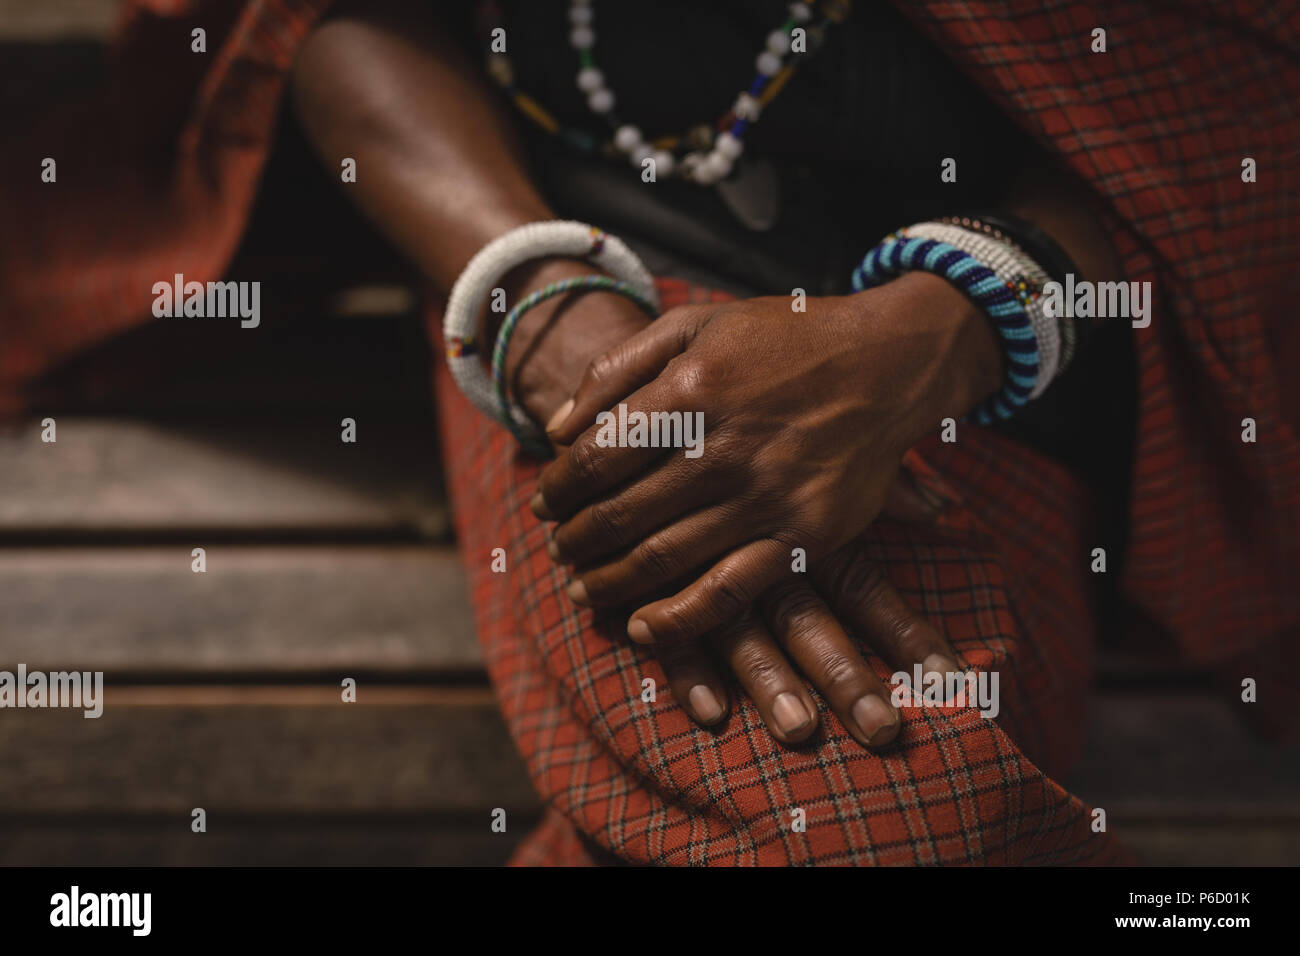 Maasai man in traditional clothing sitting on bench - Stock Image